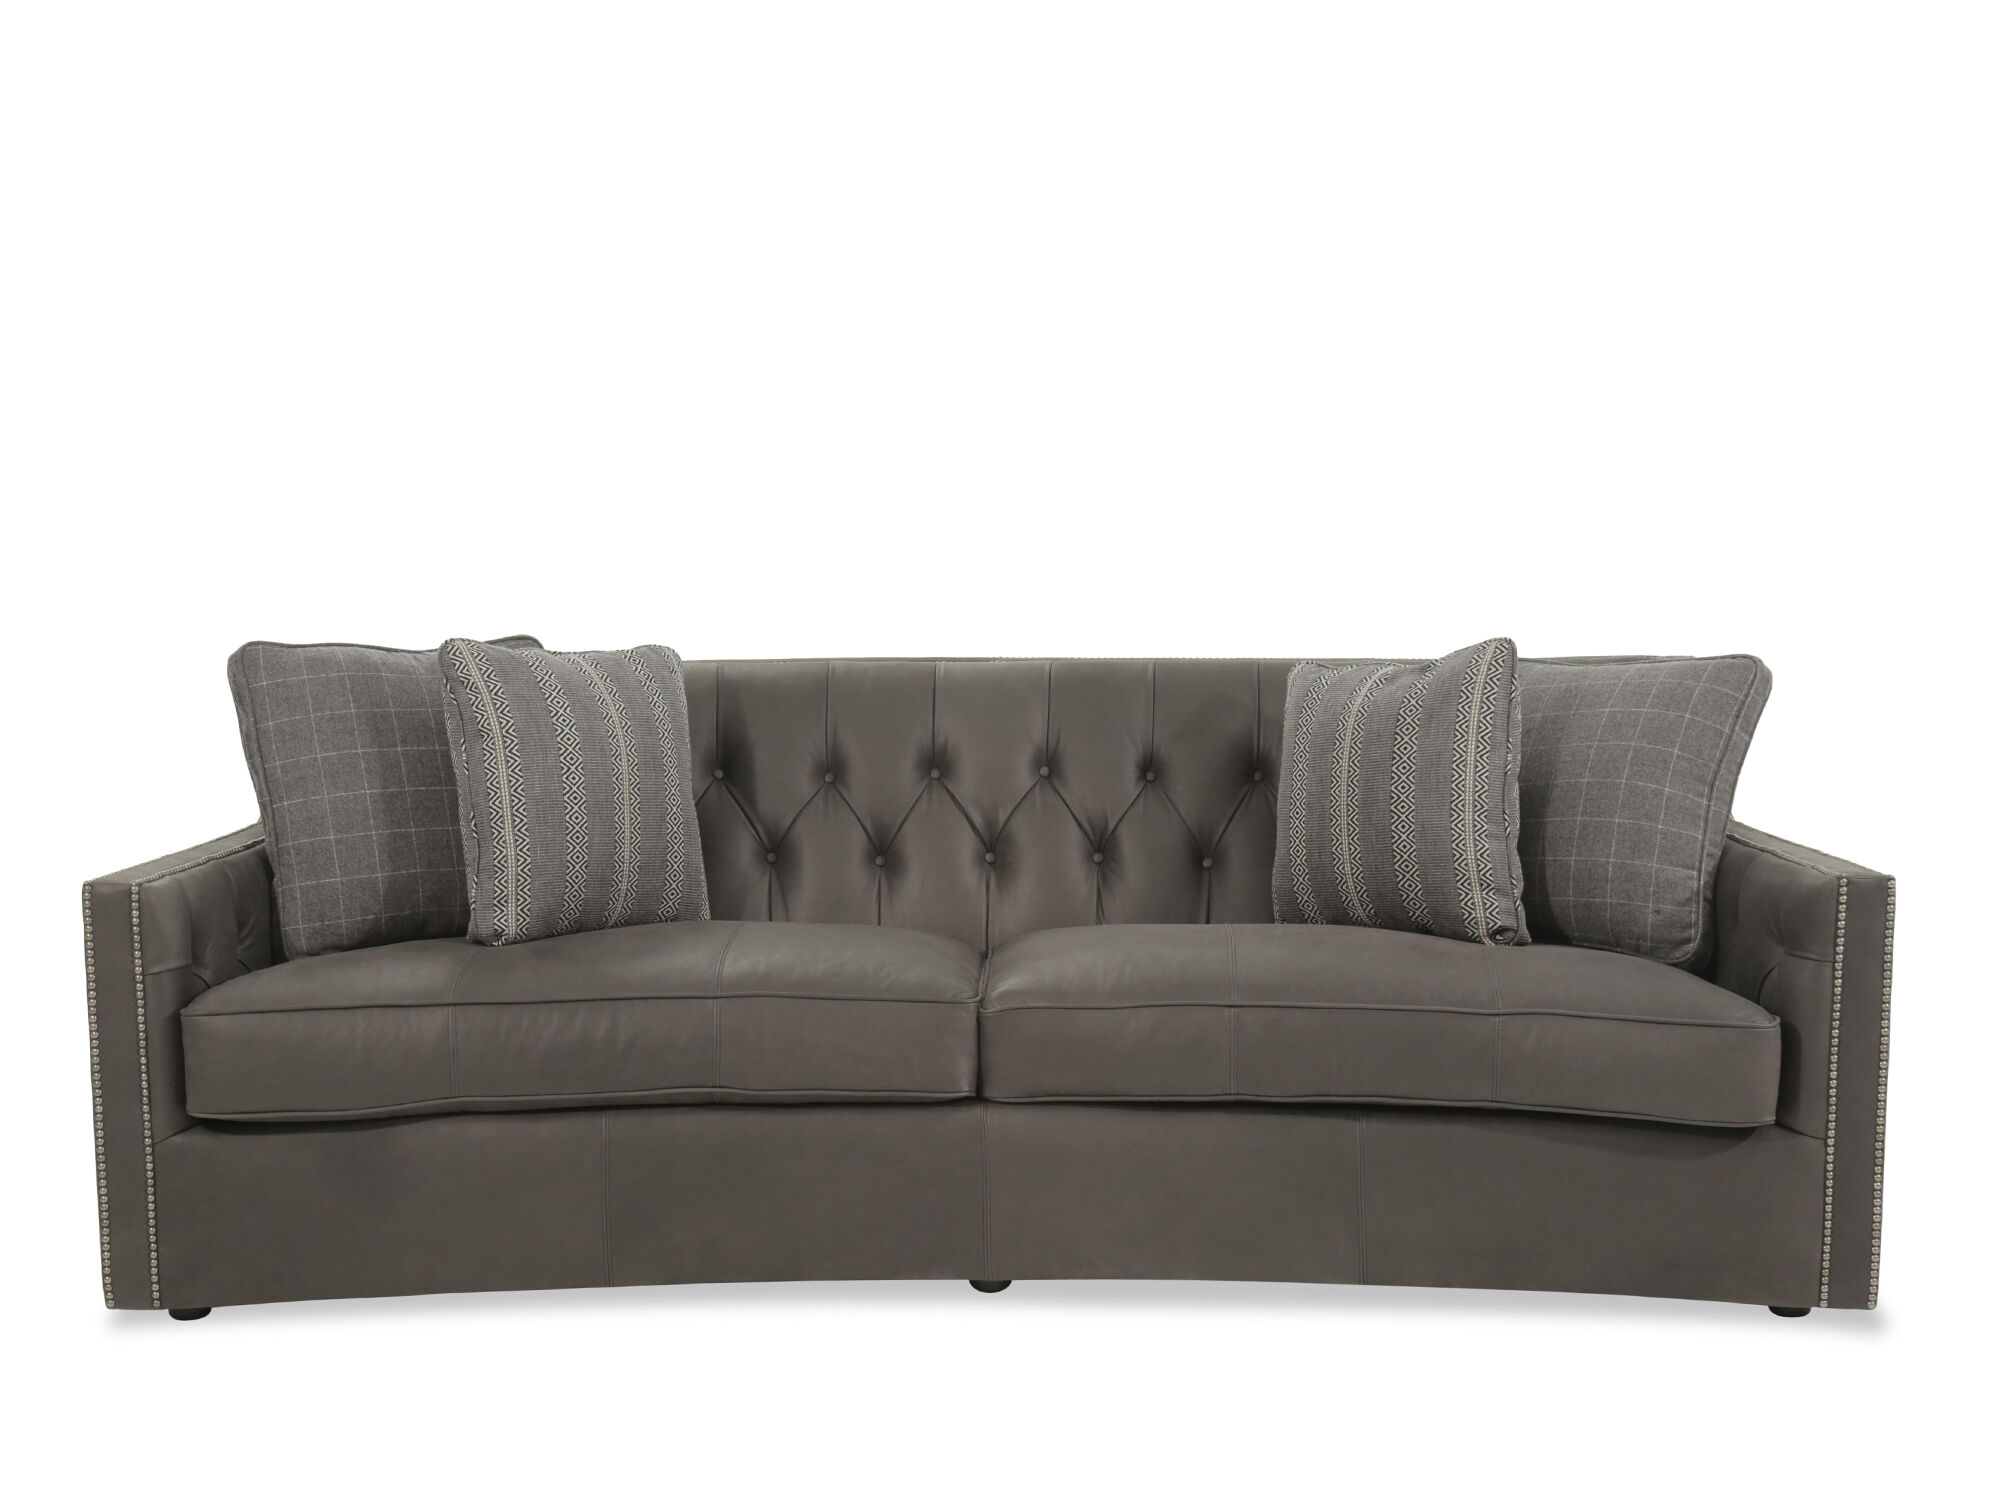 Images Button Tufted Leather 96u0026quot; Sofa In Gray Button Tufted Leather  96u0026quot; Sofa In Gray